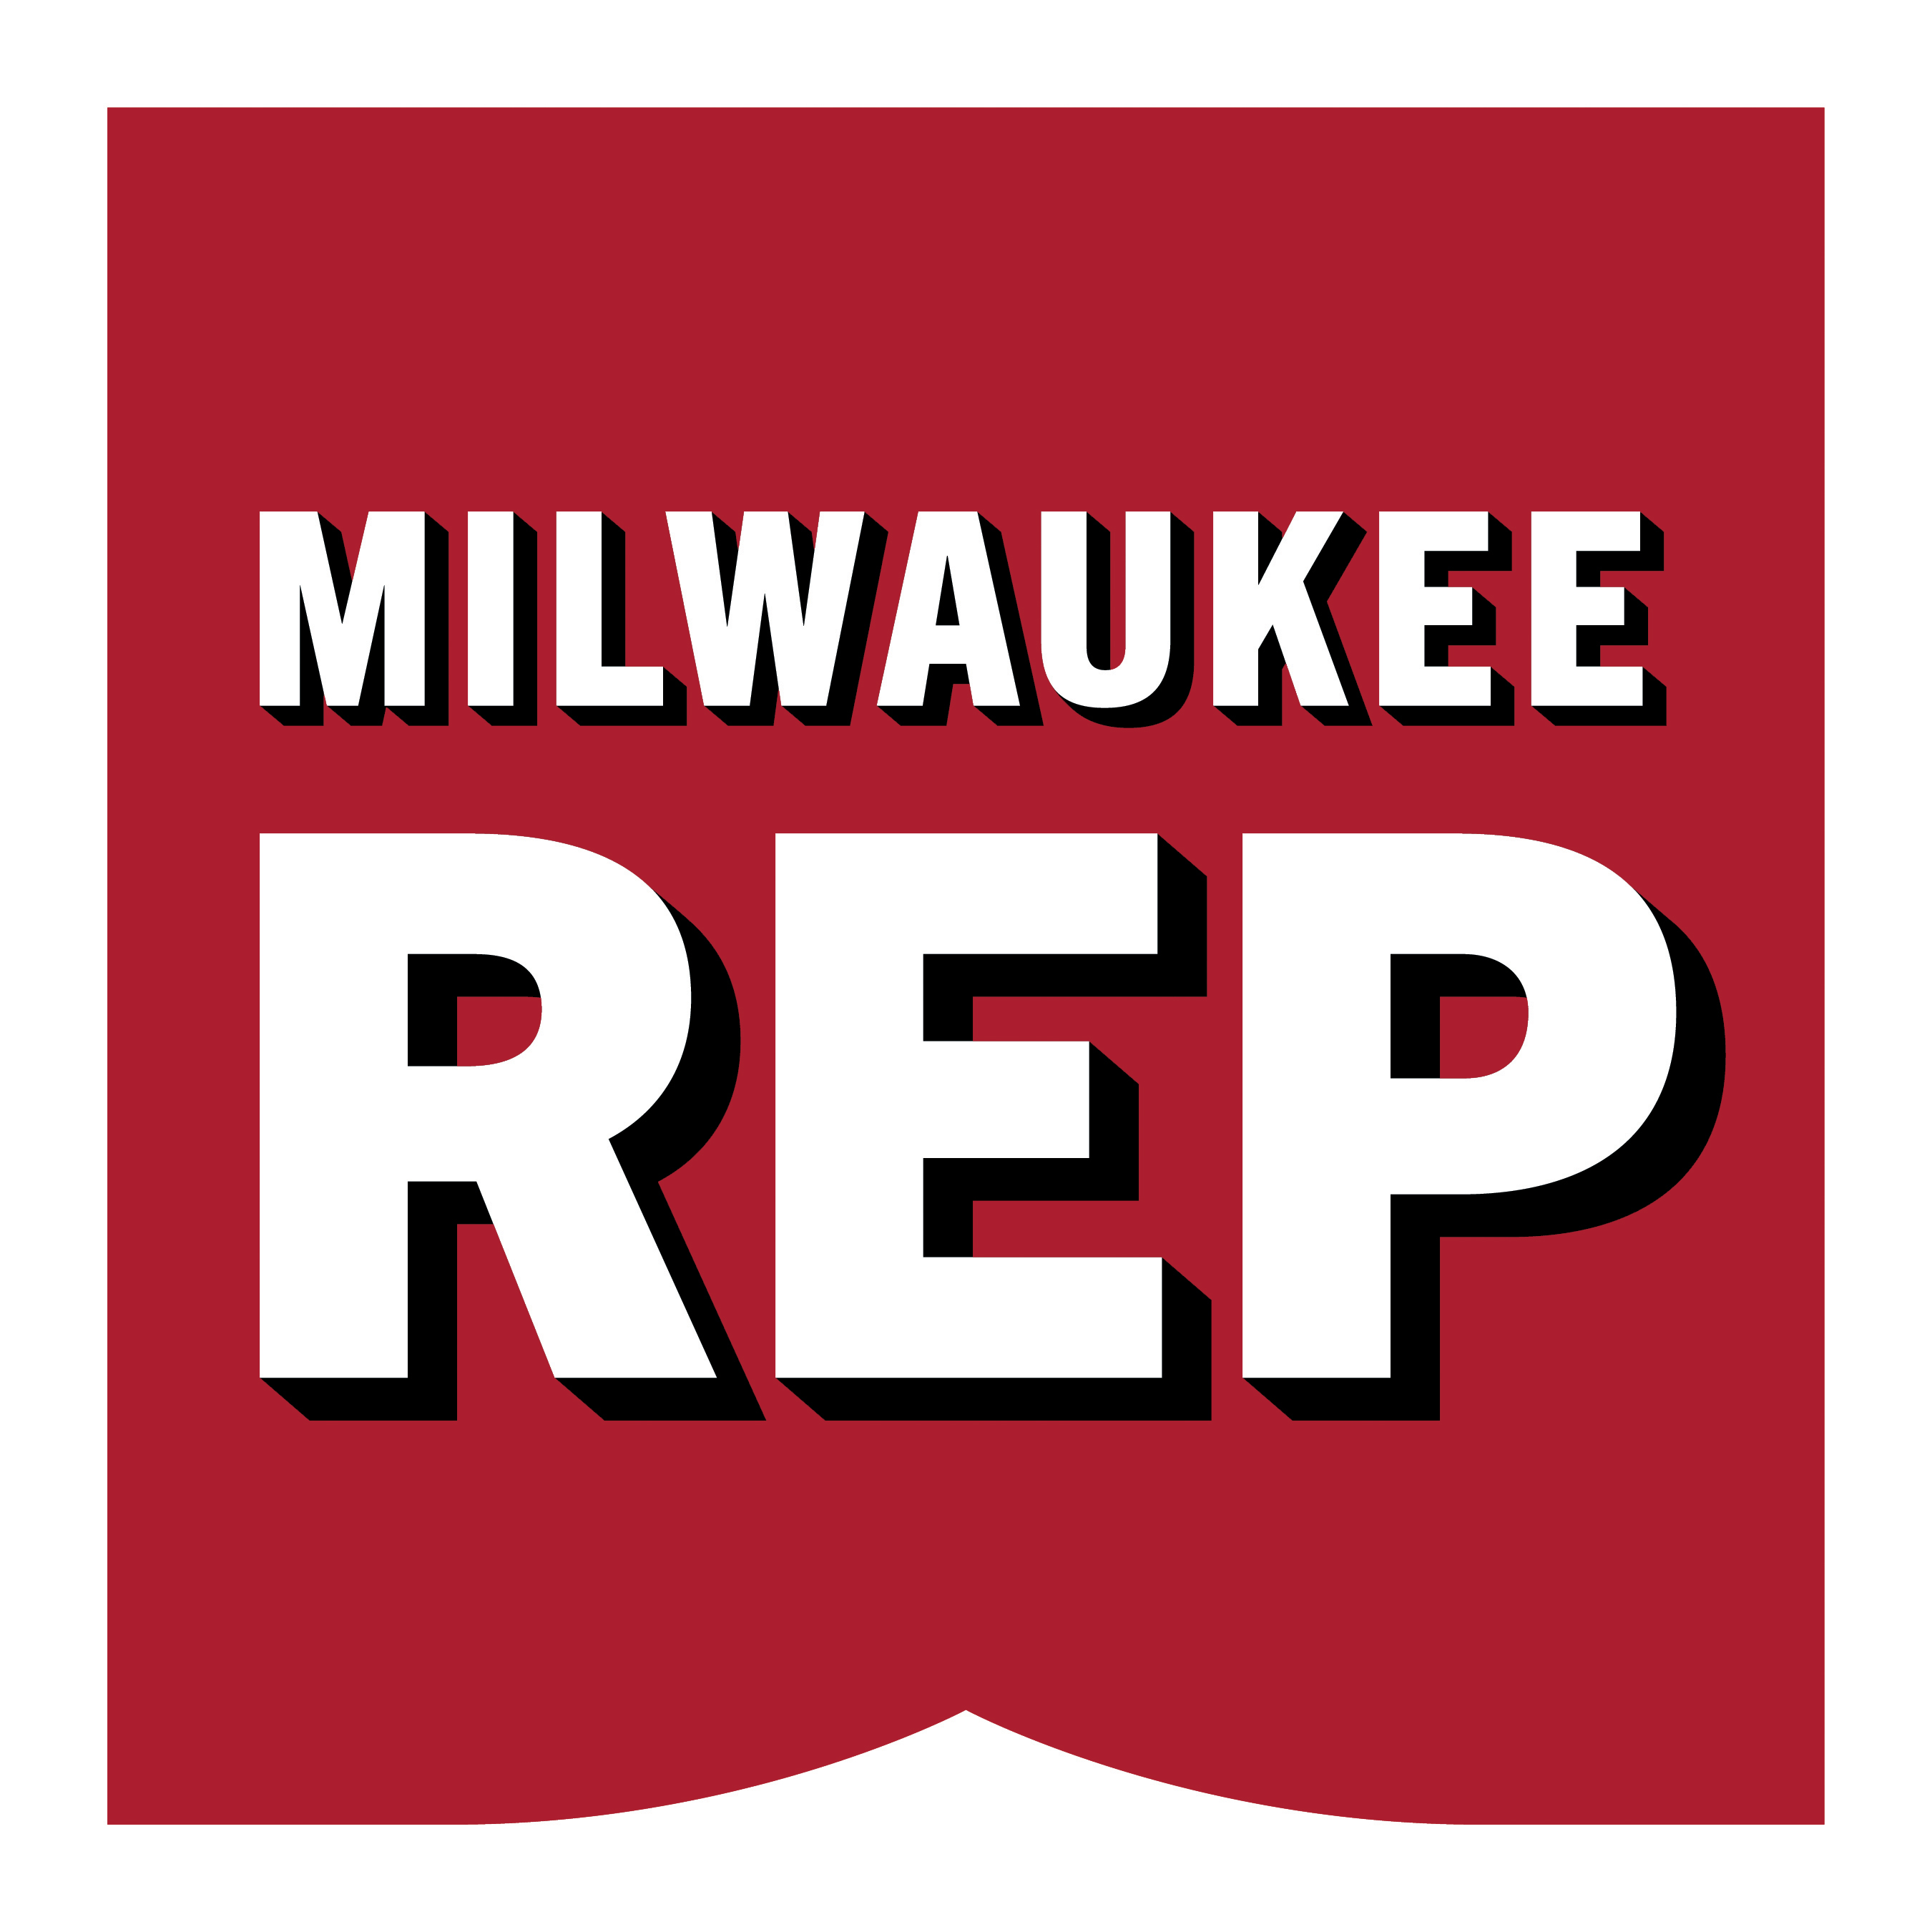 Unions Clear Reopening of Milwaukee Repertory Theater for <em>Jacob Marley's Christmas Carol</em> Starting December 1 Pending Local Conditions